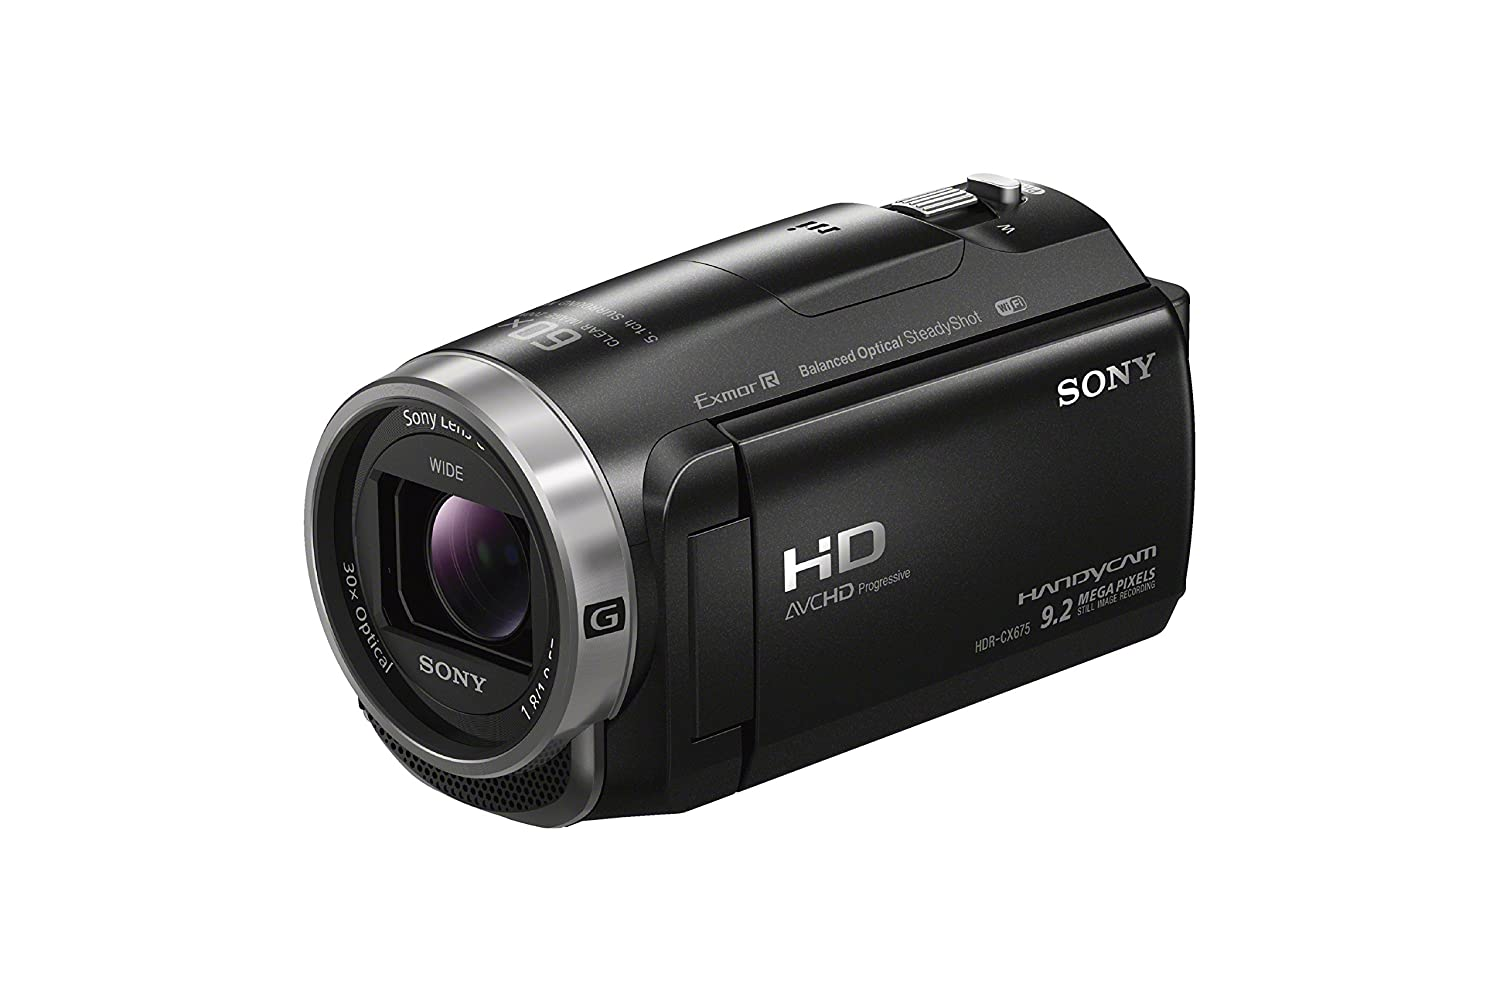 8 Best Camcorder under 500 in 2020 buying guides 5